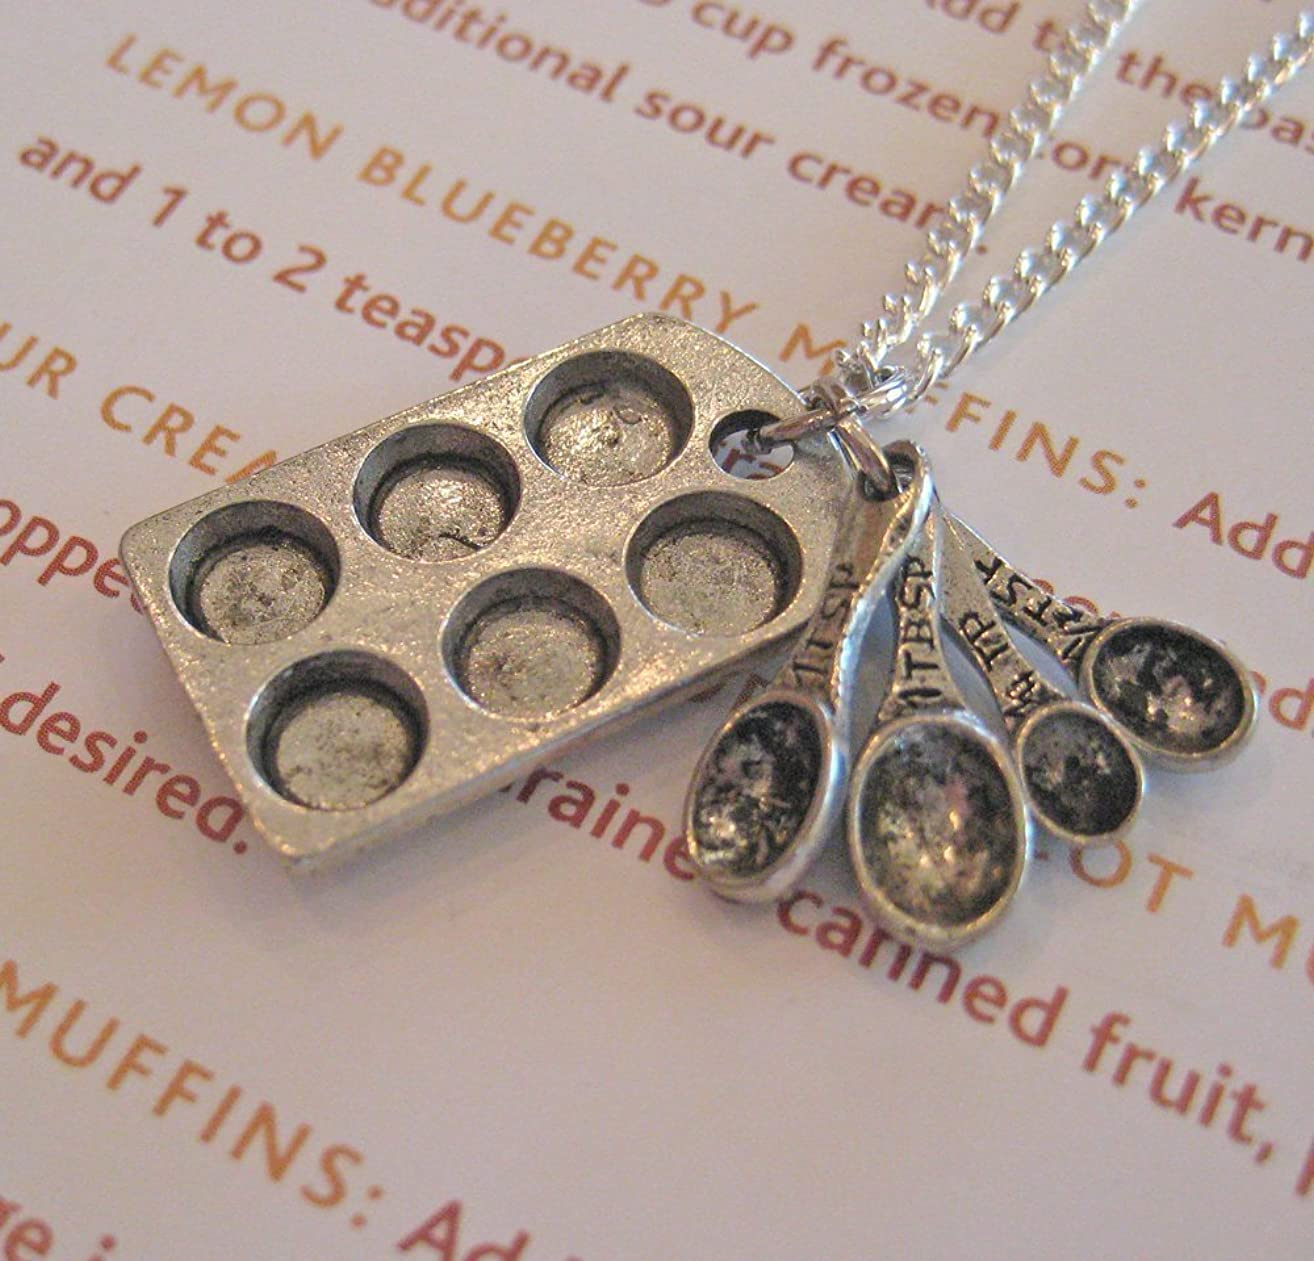 Muffin Pan & Measuring Spoons Necklace, Baker's Necklace, Cupcake Pan Necklace, Baking Themed Jewelry